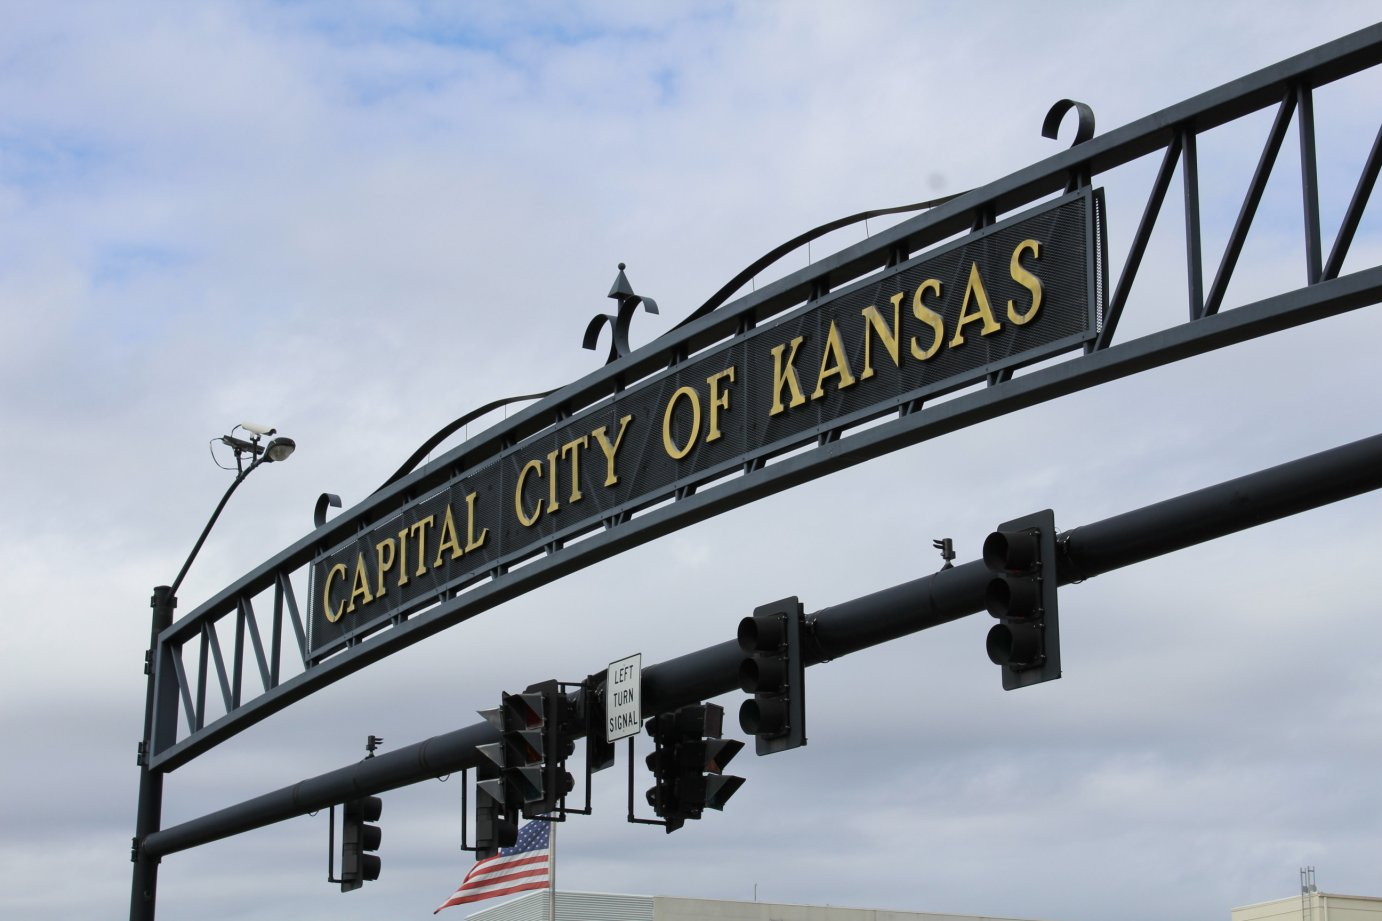 File photo, city of Topeka (Photo by J. Schafer)